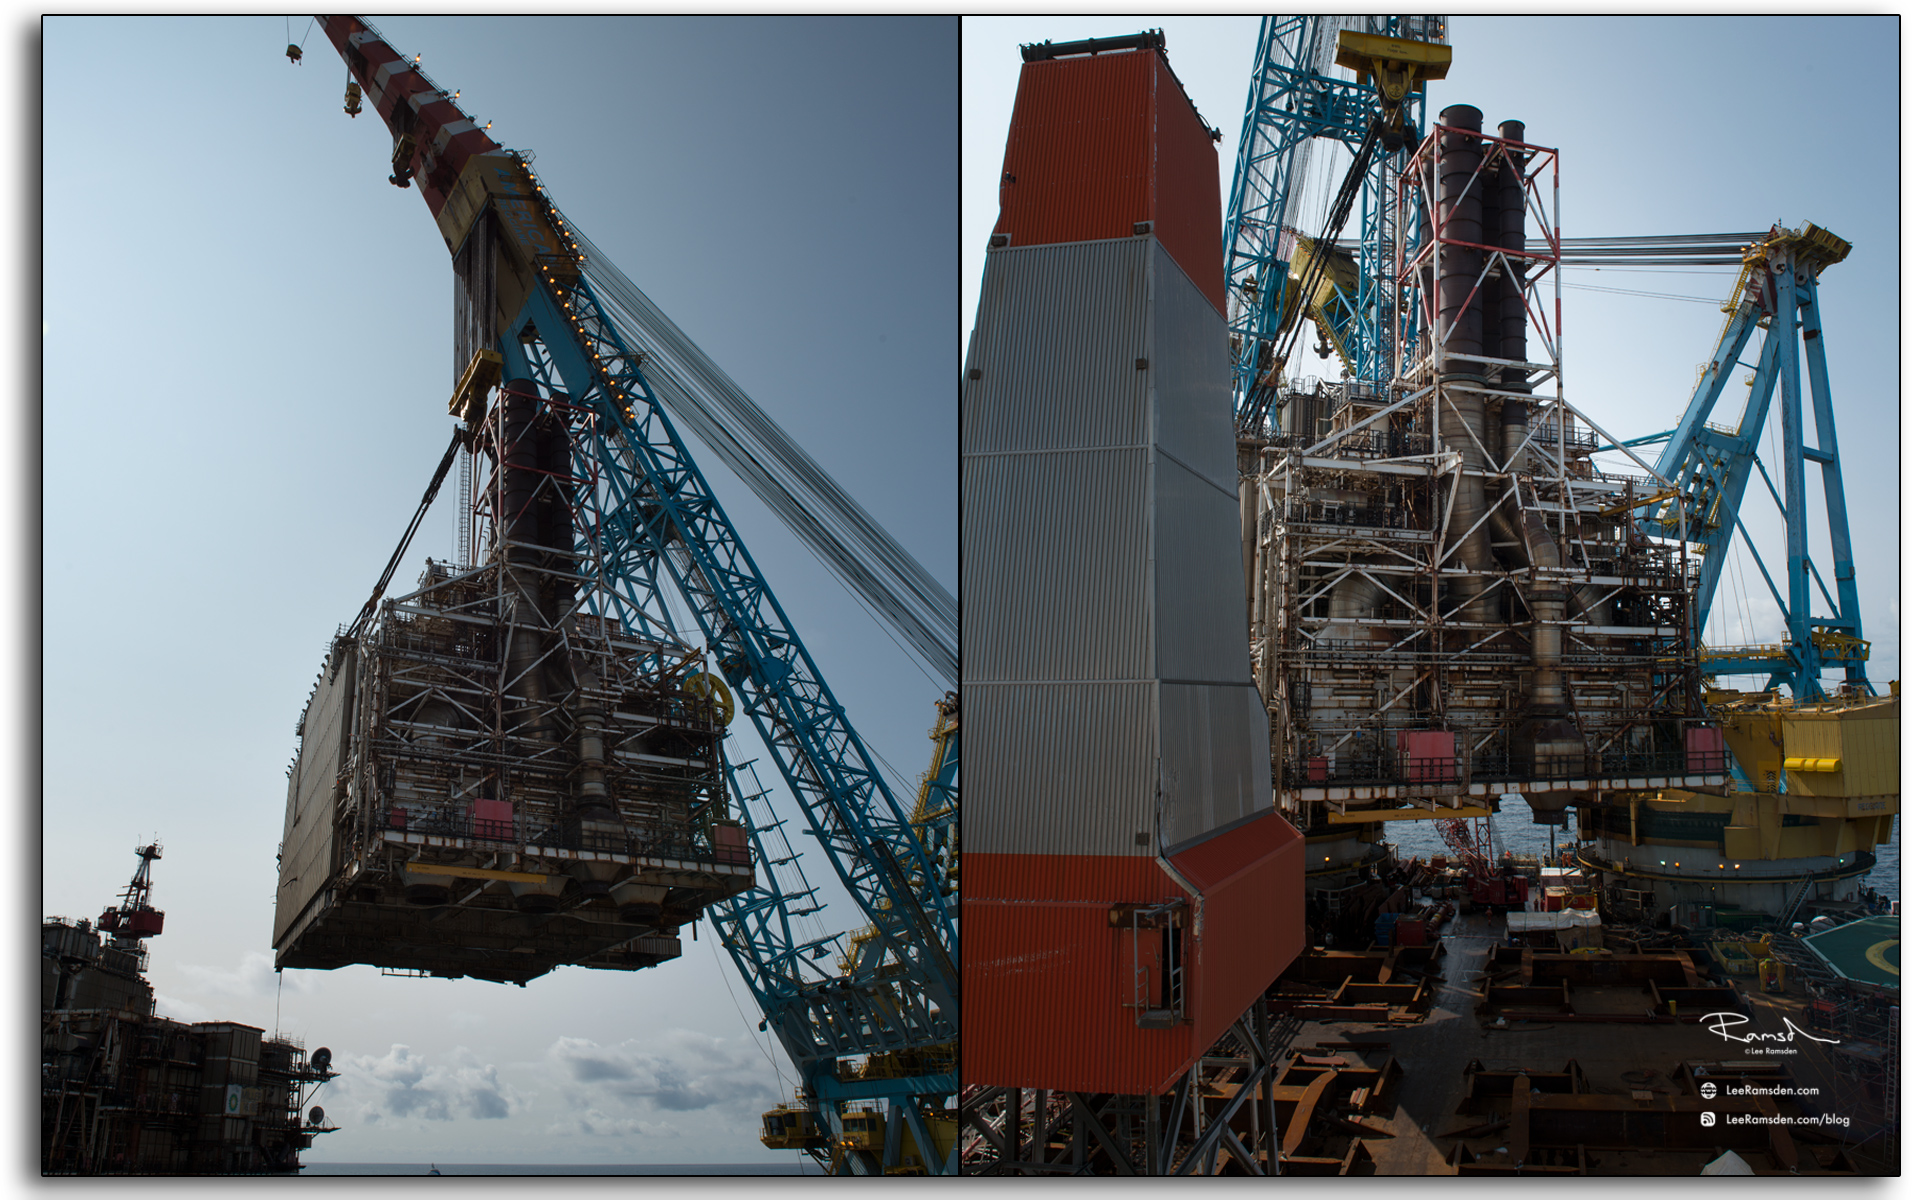 Saipem s7000, M1, crane lifting, offshore, northsea, floating, heavy lift vessel